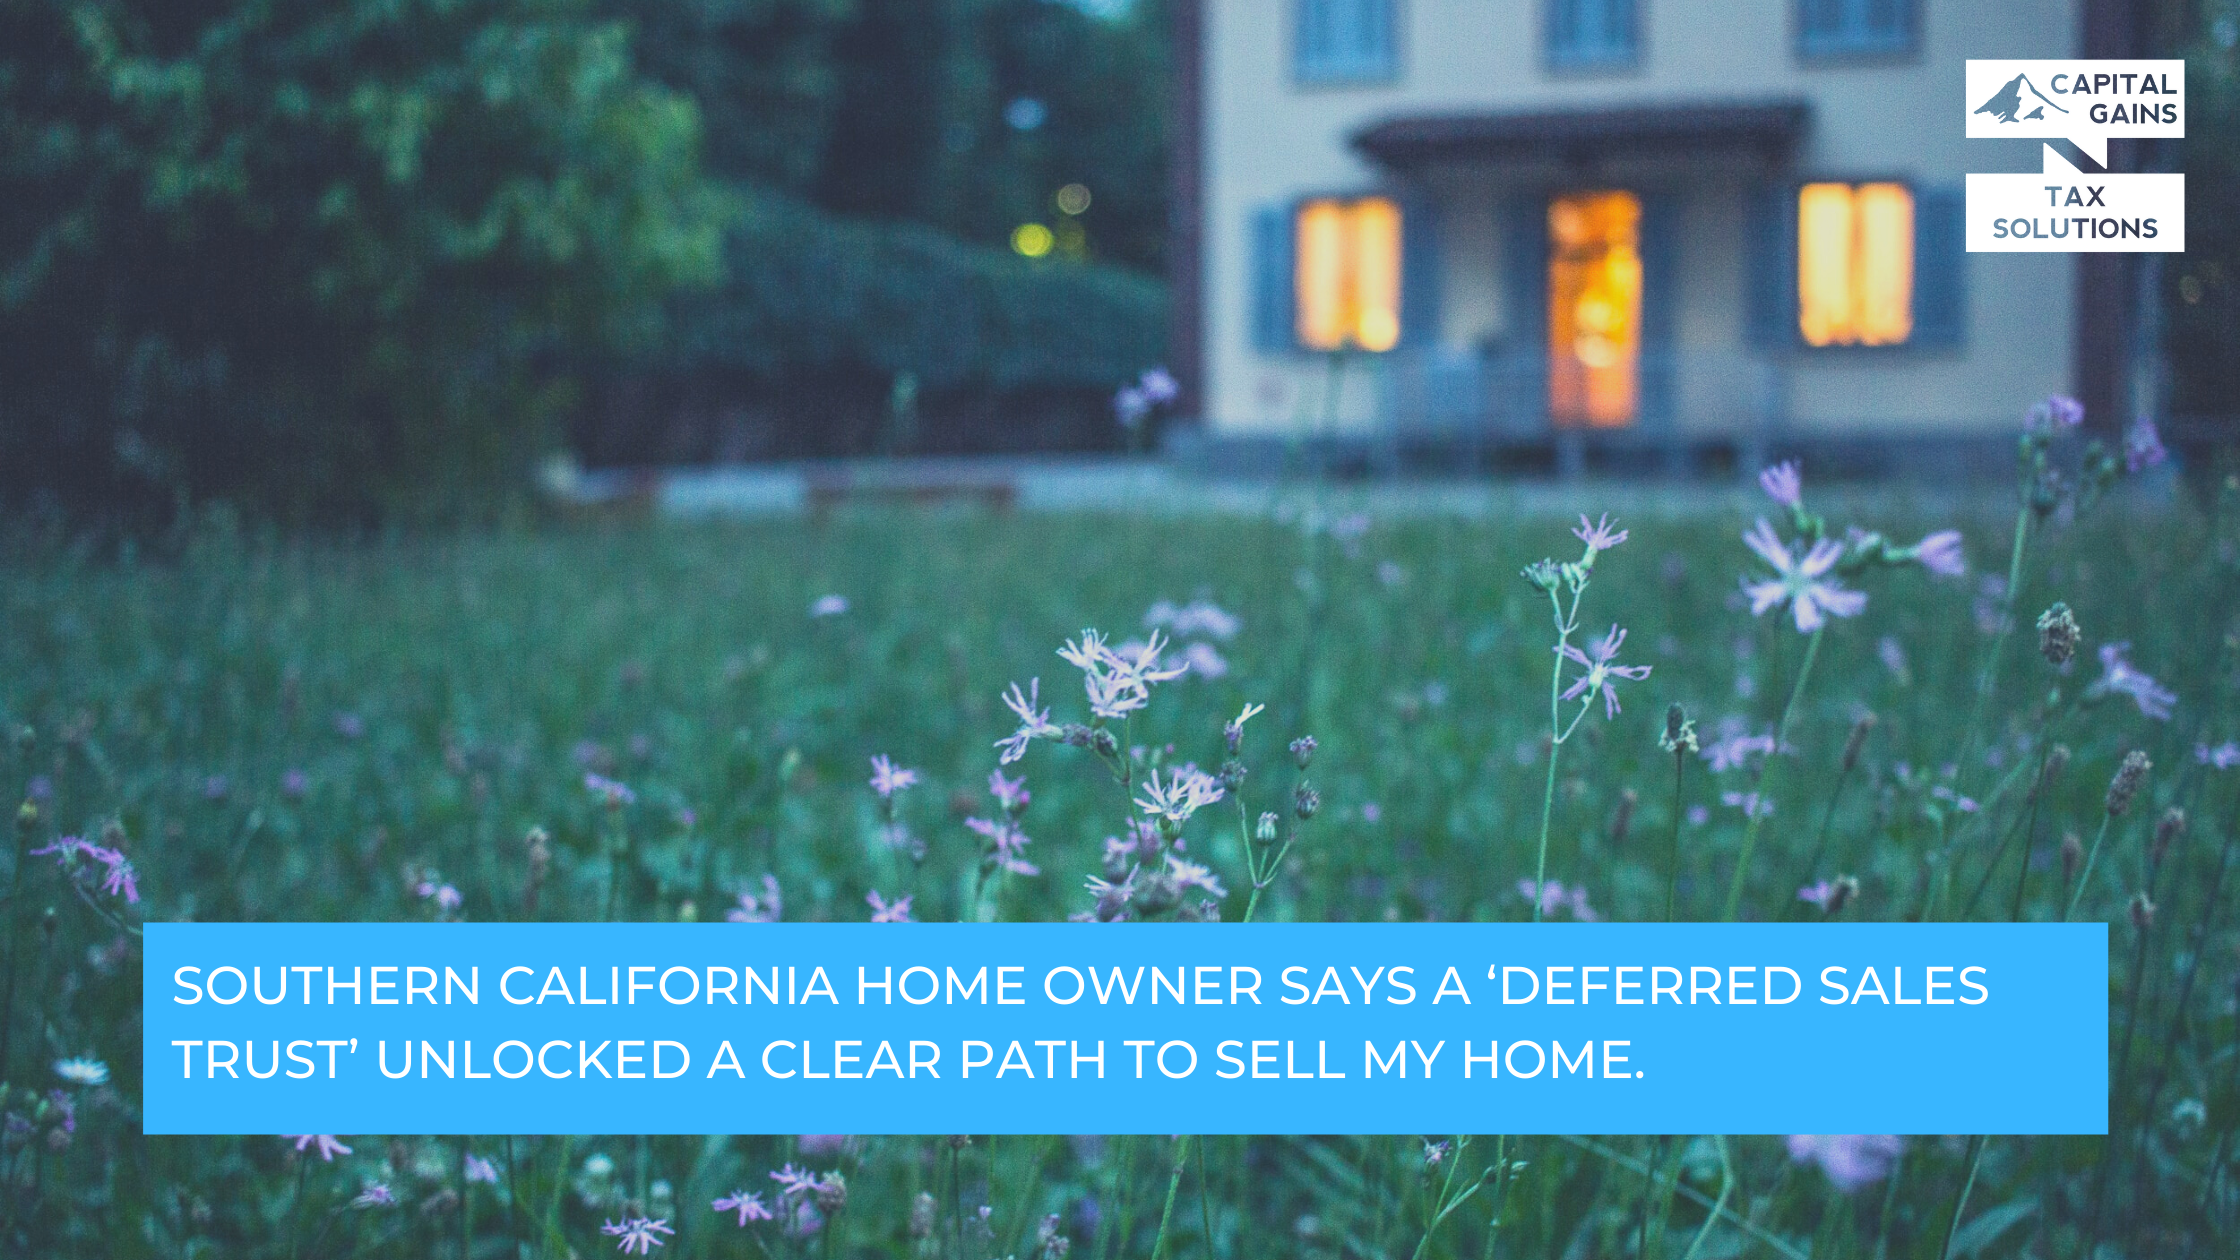 CGTS Living Your Best Life: Southern California Home Owner Says a 'Deferred Sales Trust' Unlocked a Clear Path to Sell My Home